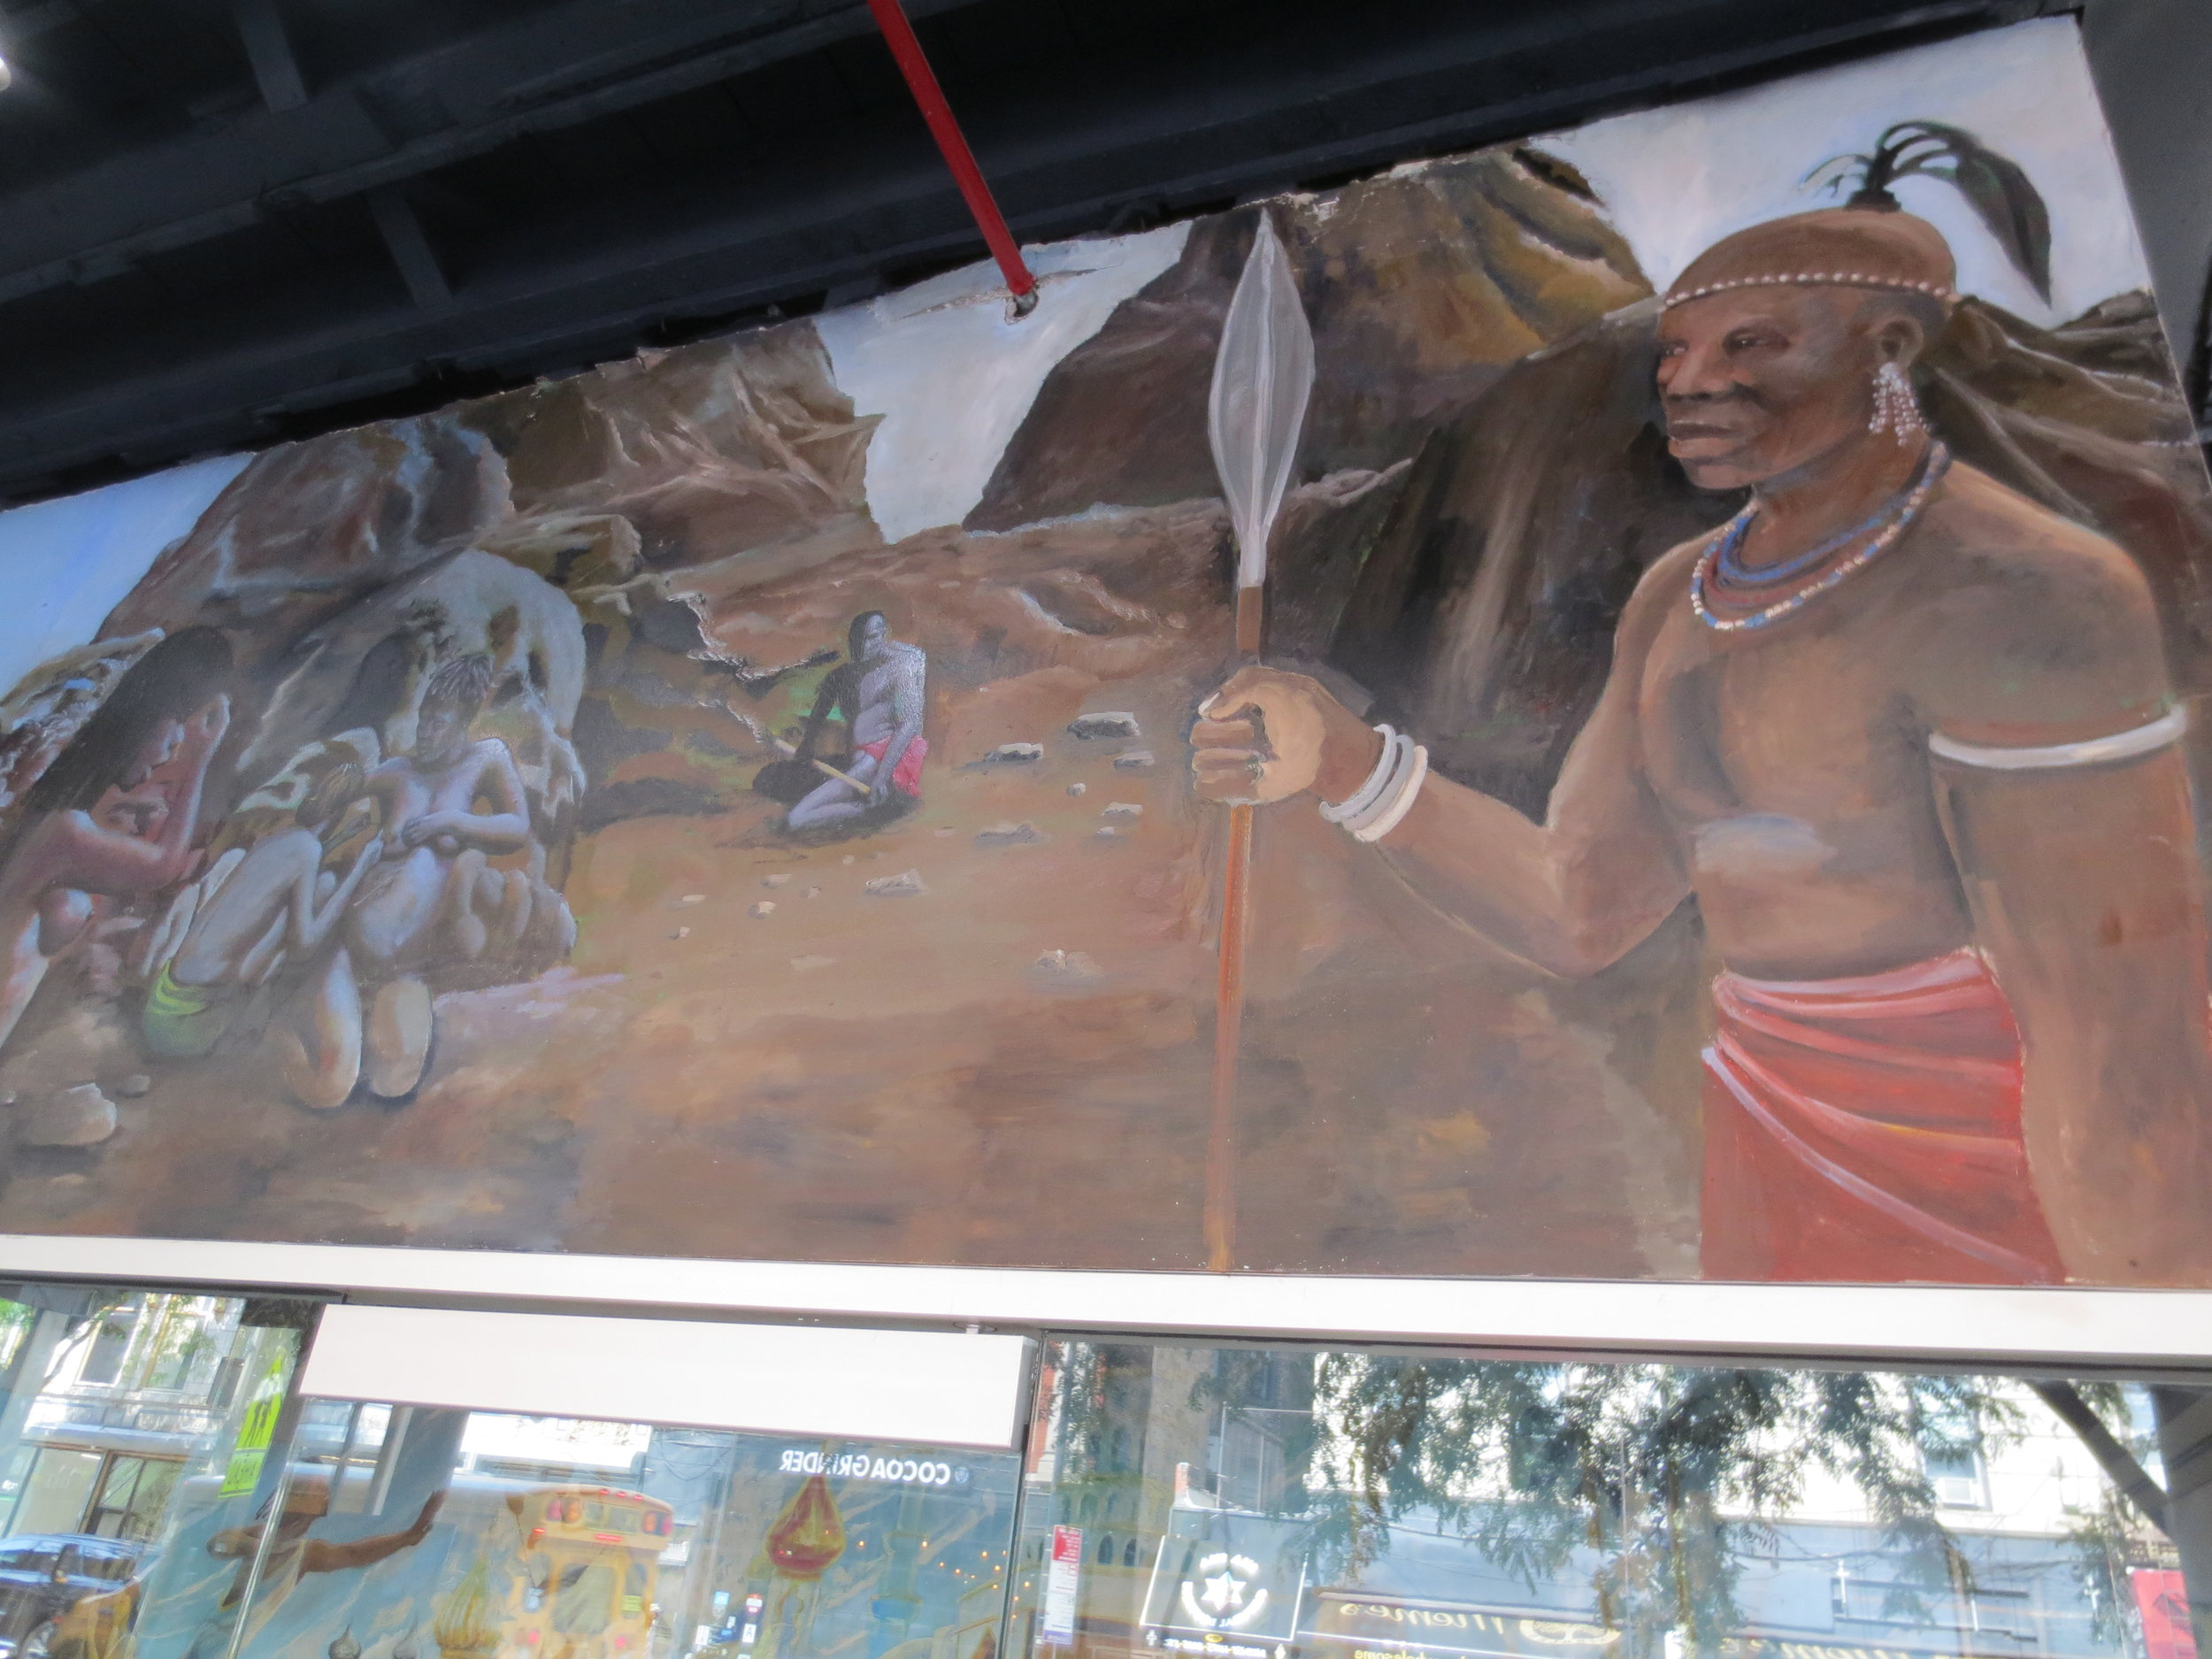 A mural at The Black Lady Theatre depicting Black History from prehistoric times to the present.